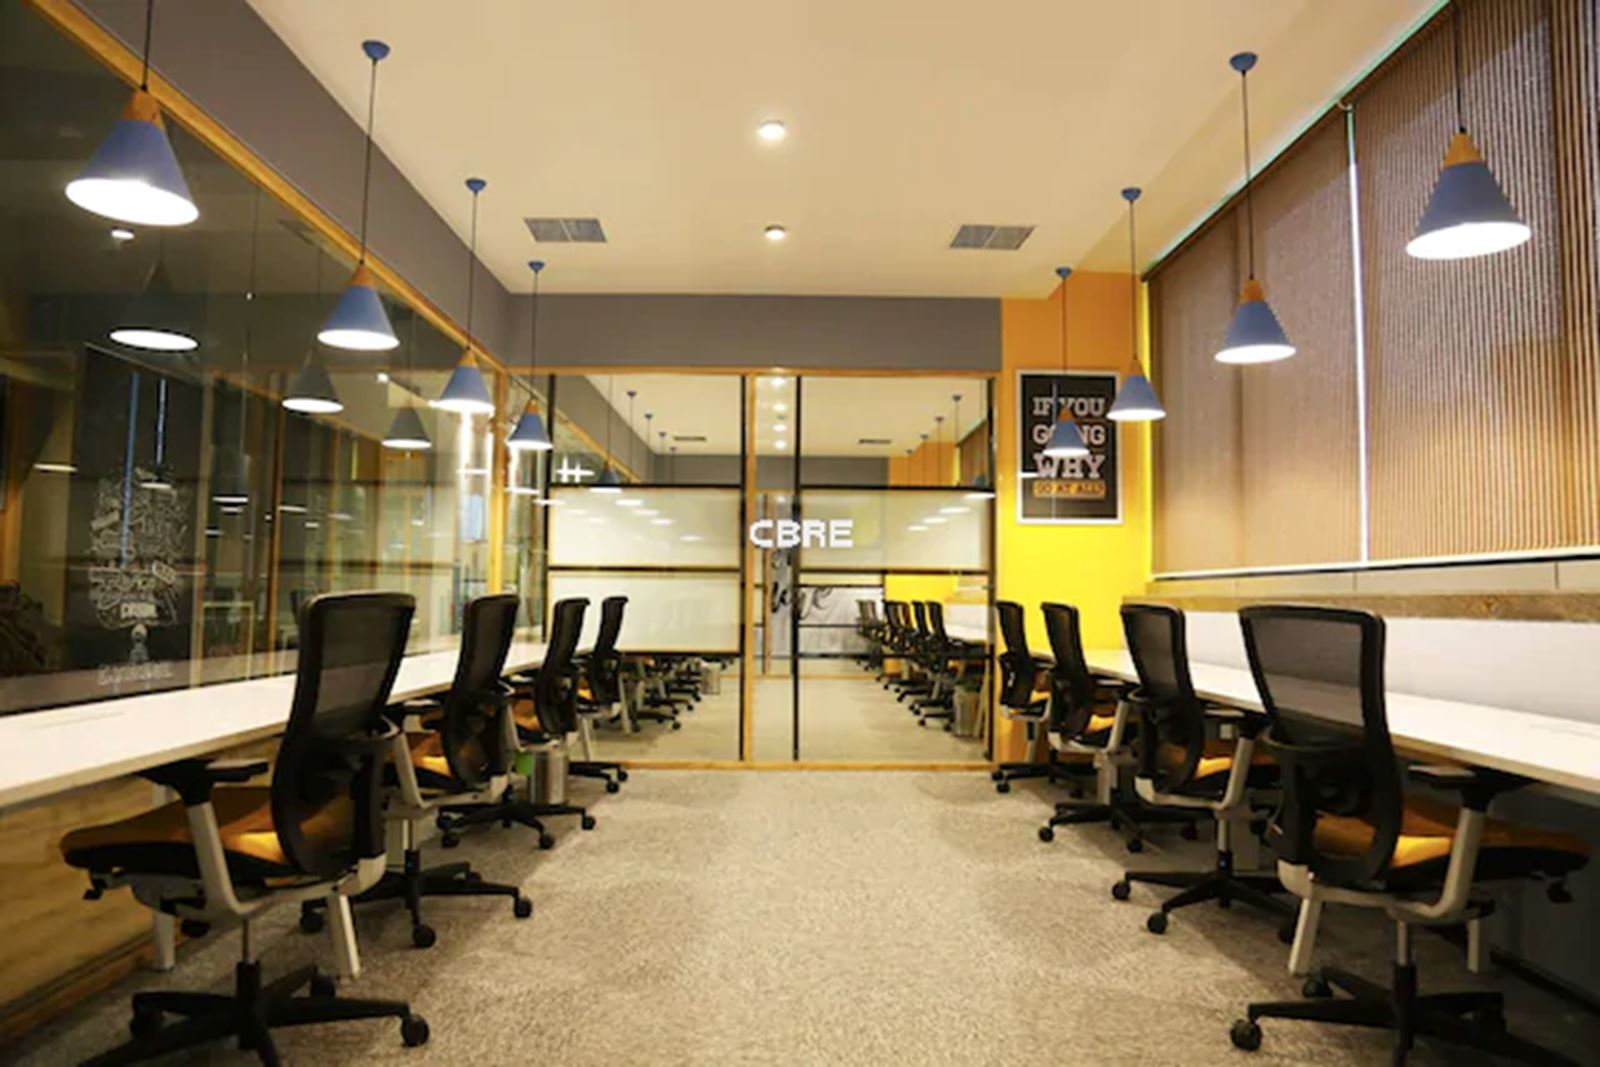 Flexible Office To Rent Oyo Innov8 Boston House Andheri East Mumbai Maharashtra India 400093 Cbre Commercial